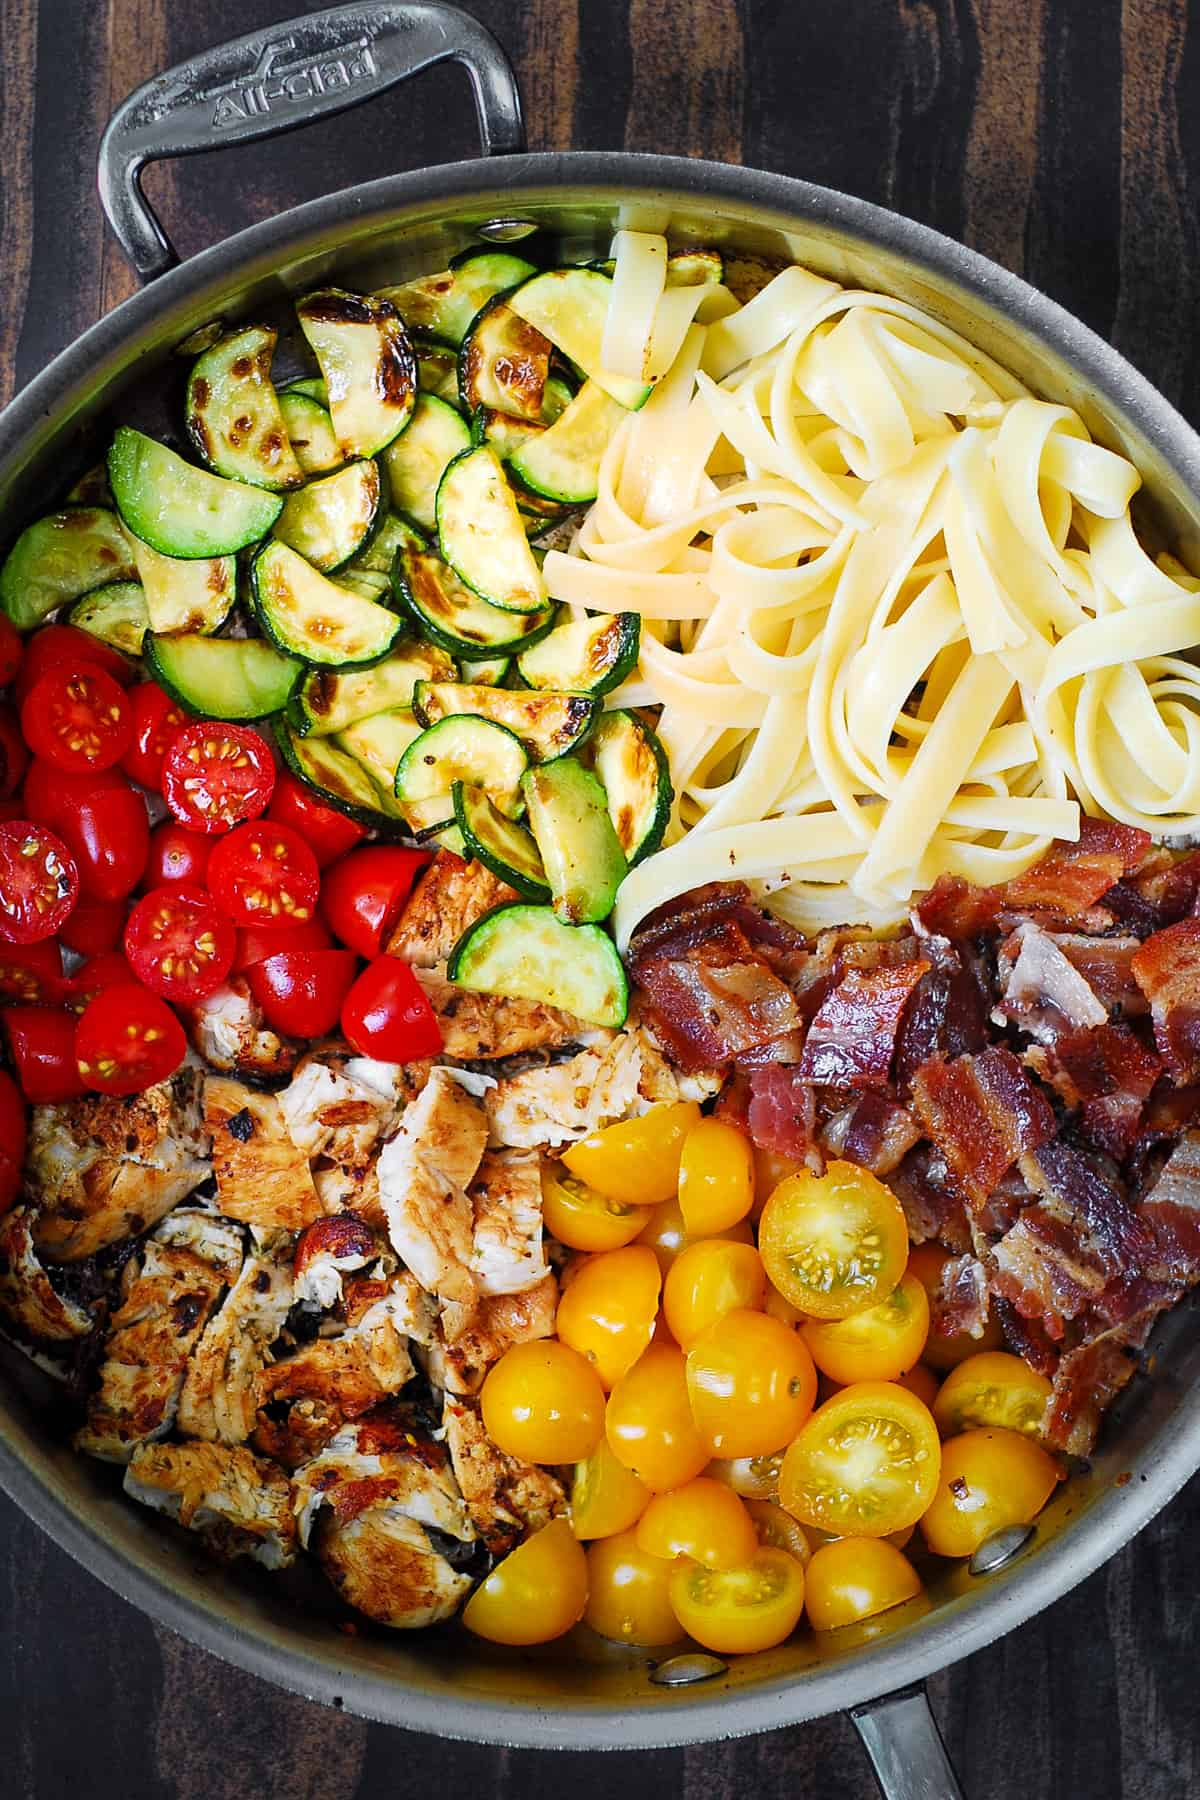 sections of food in a stainless steel pan: cooked sliced zucchini, cooked fettuccine, cooked chopped bacon, cherry tomatoes, cooked sliced chicken